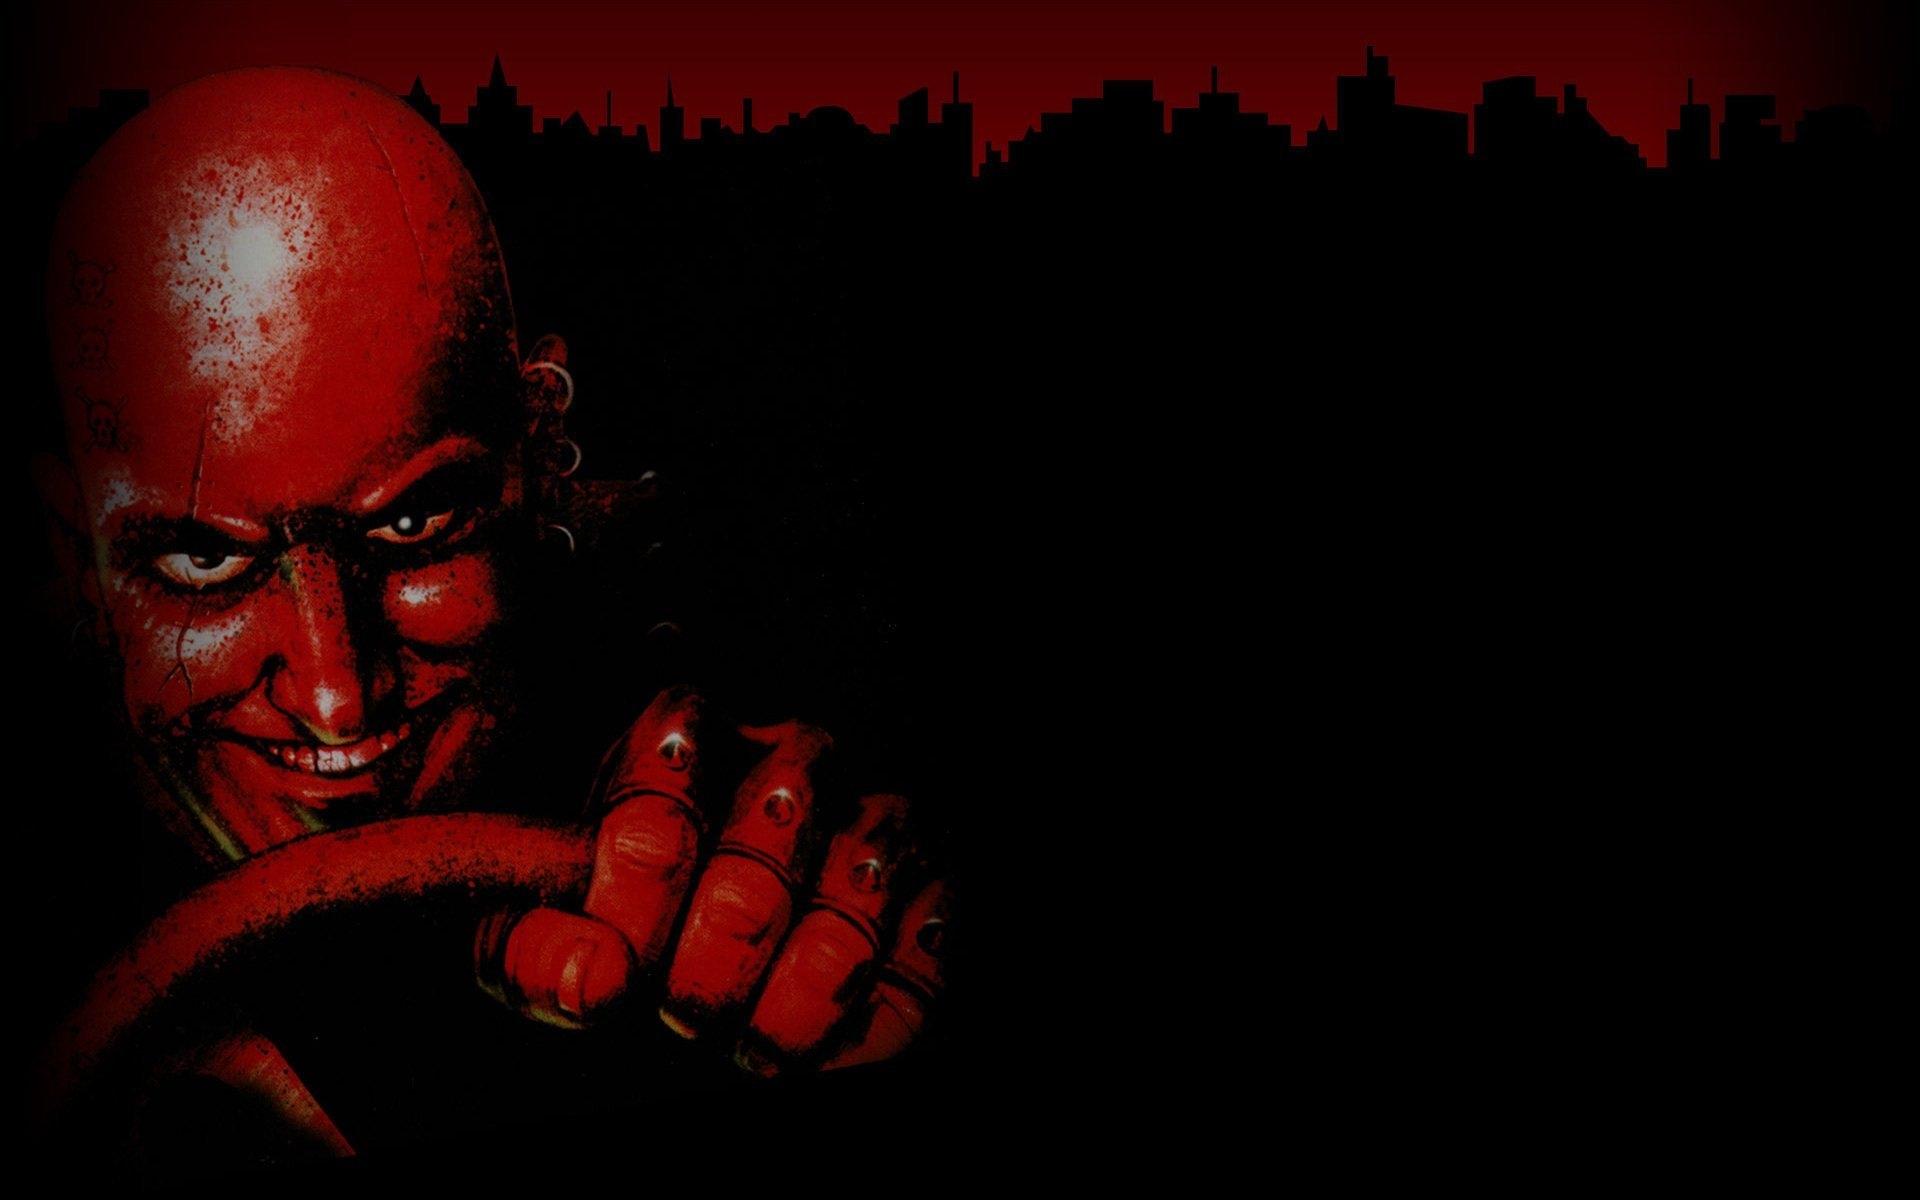 Carmageddon Max Pack HD Wallpaper Background Image 1920x1200 1920x1200